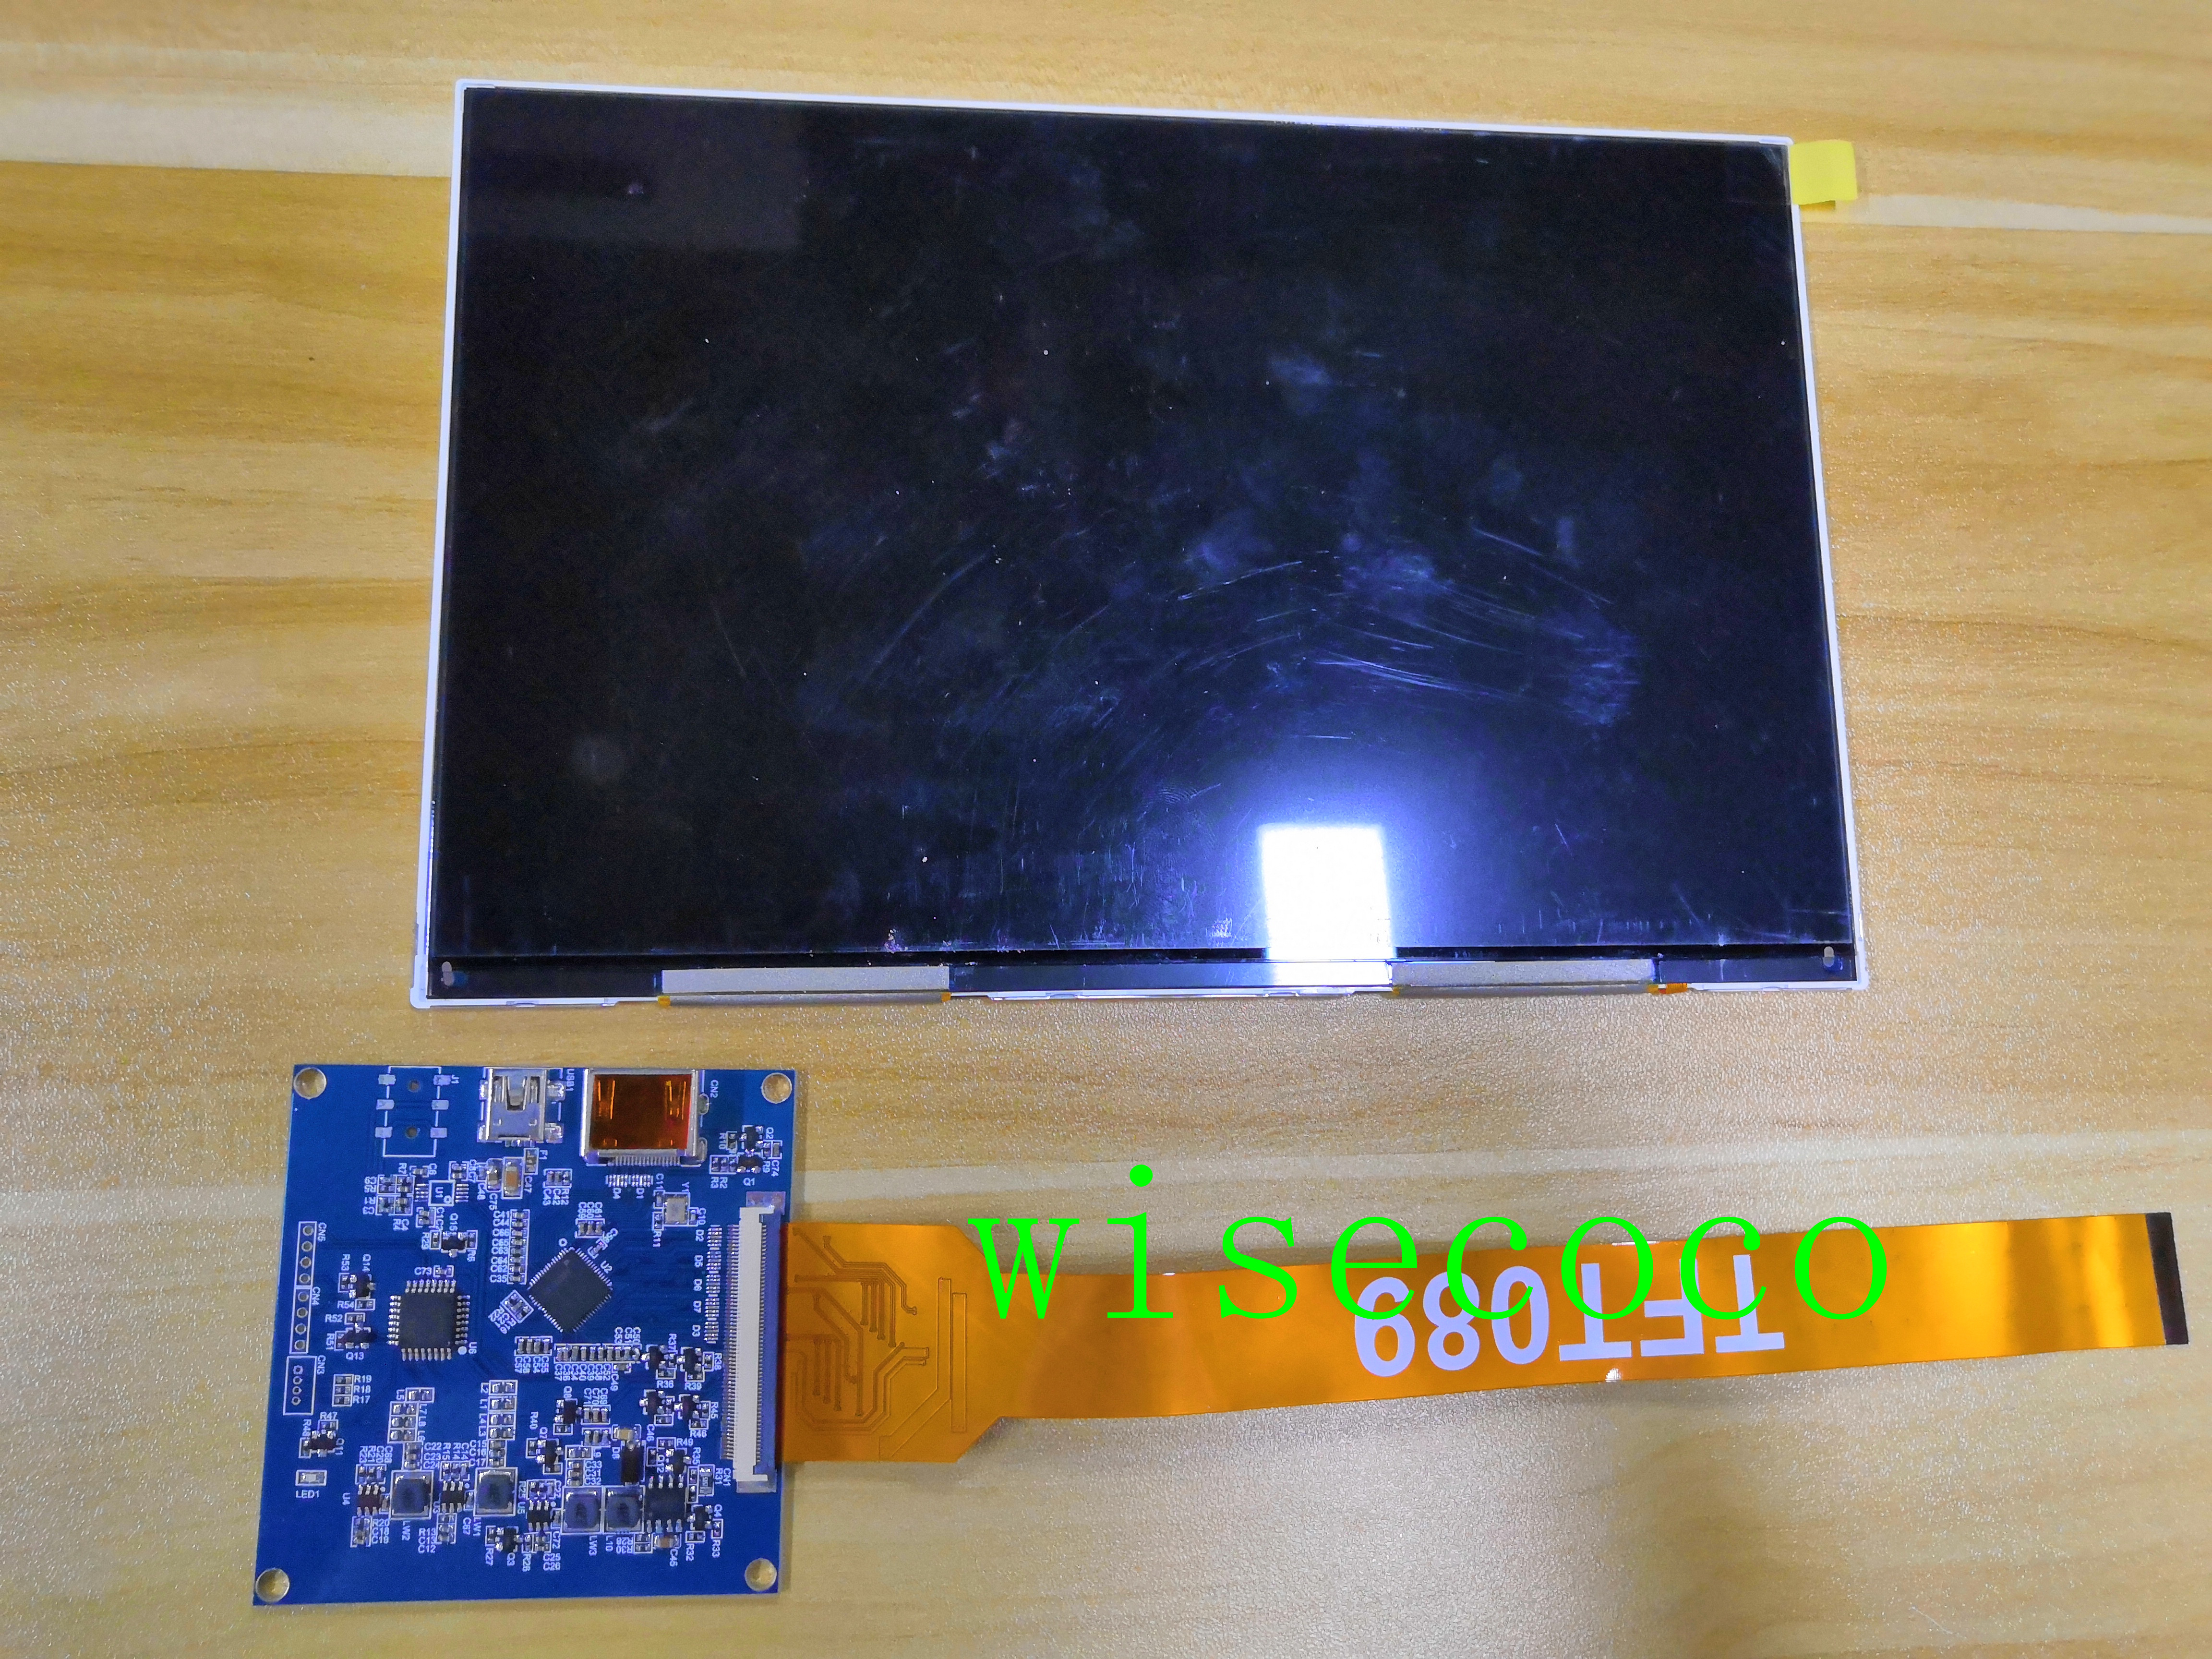 8.9 inch 2560*1600 2k IPS lcd display 16:10 screen with HDMI MIPI driver board Raspberry PI 3 DIY DLP 3d printer(China)